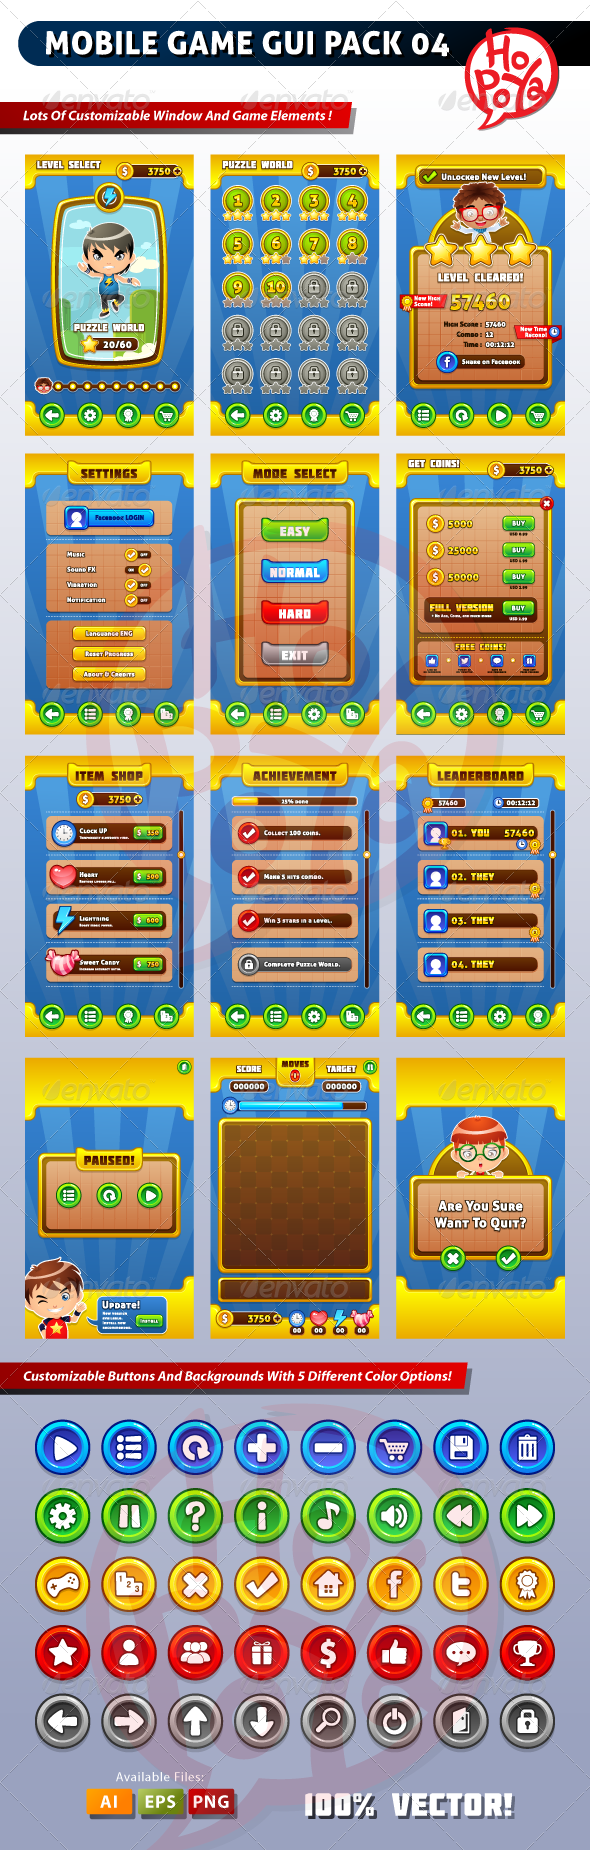 Mobile Game GUI Pack 04 - Web Elements Vectors